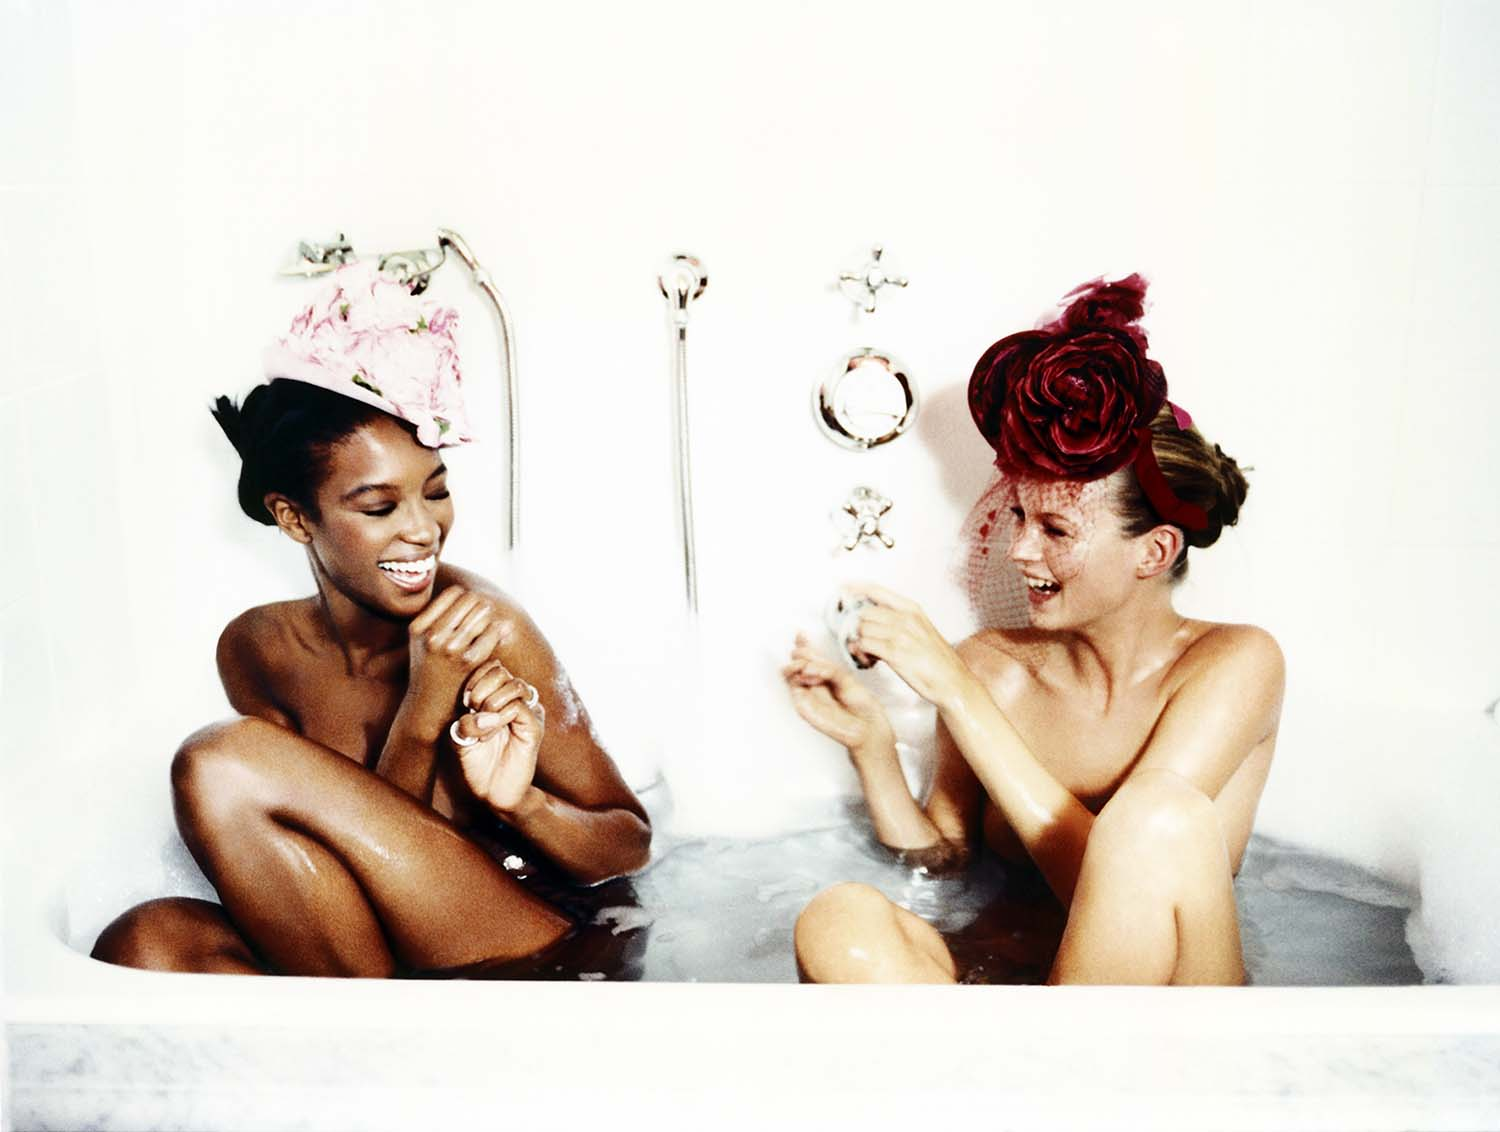 Ellen von Unwerth, Bathtub, Naomi Campbell and Kate Moss